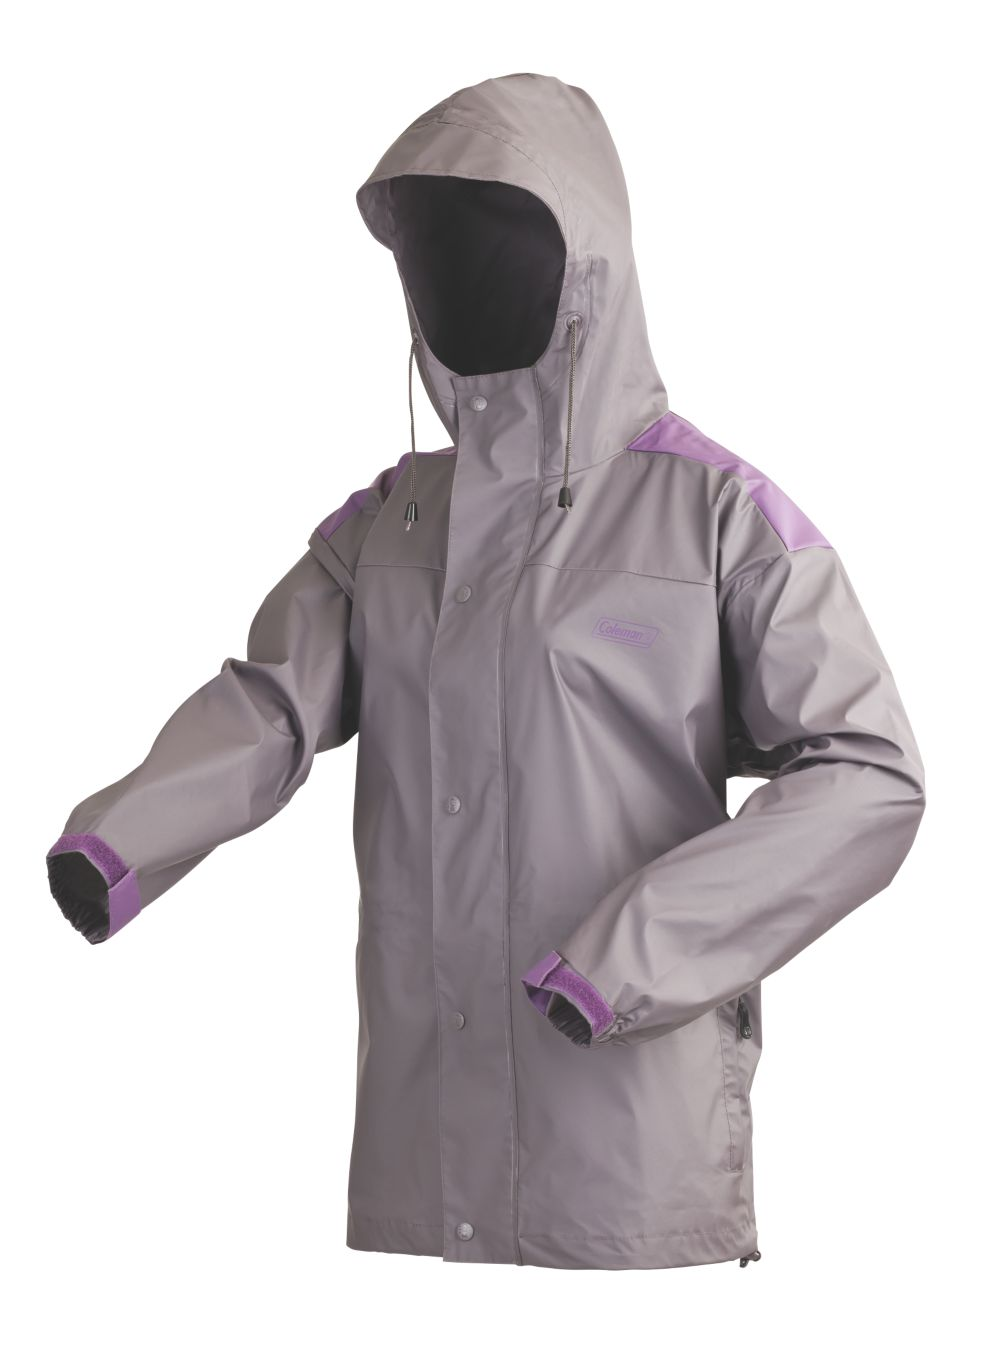 Women's PVC/Nylon Jacket